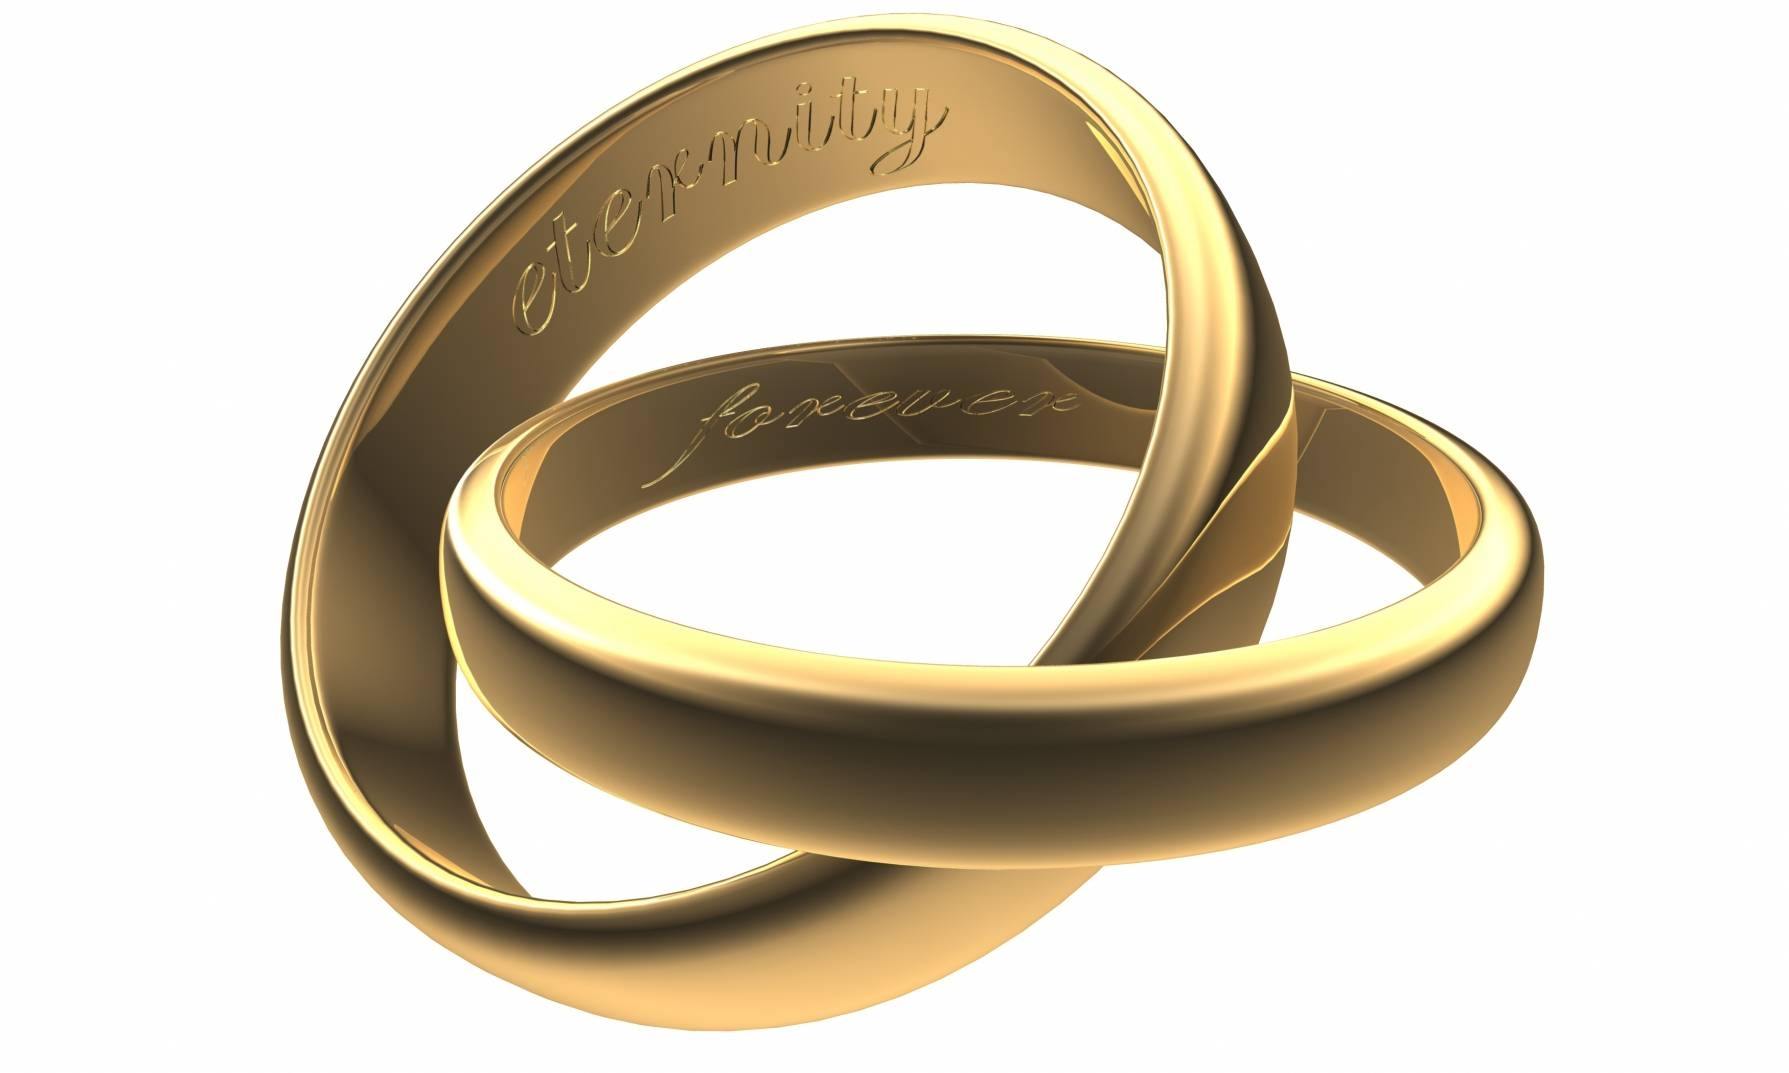 Engraved Wedding Bands | Wedding Band Engraving Regarding Interlocking Wedding Bands (View 5 of 15)